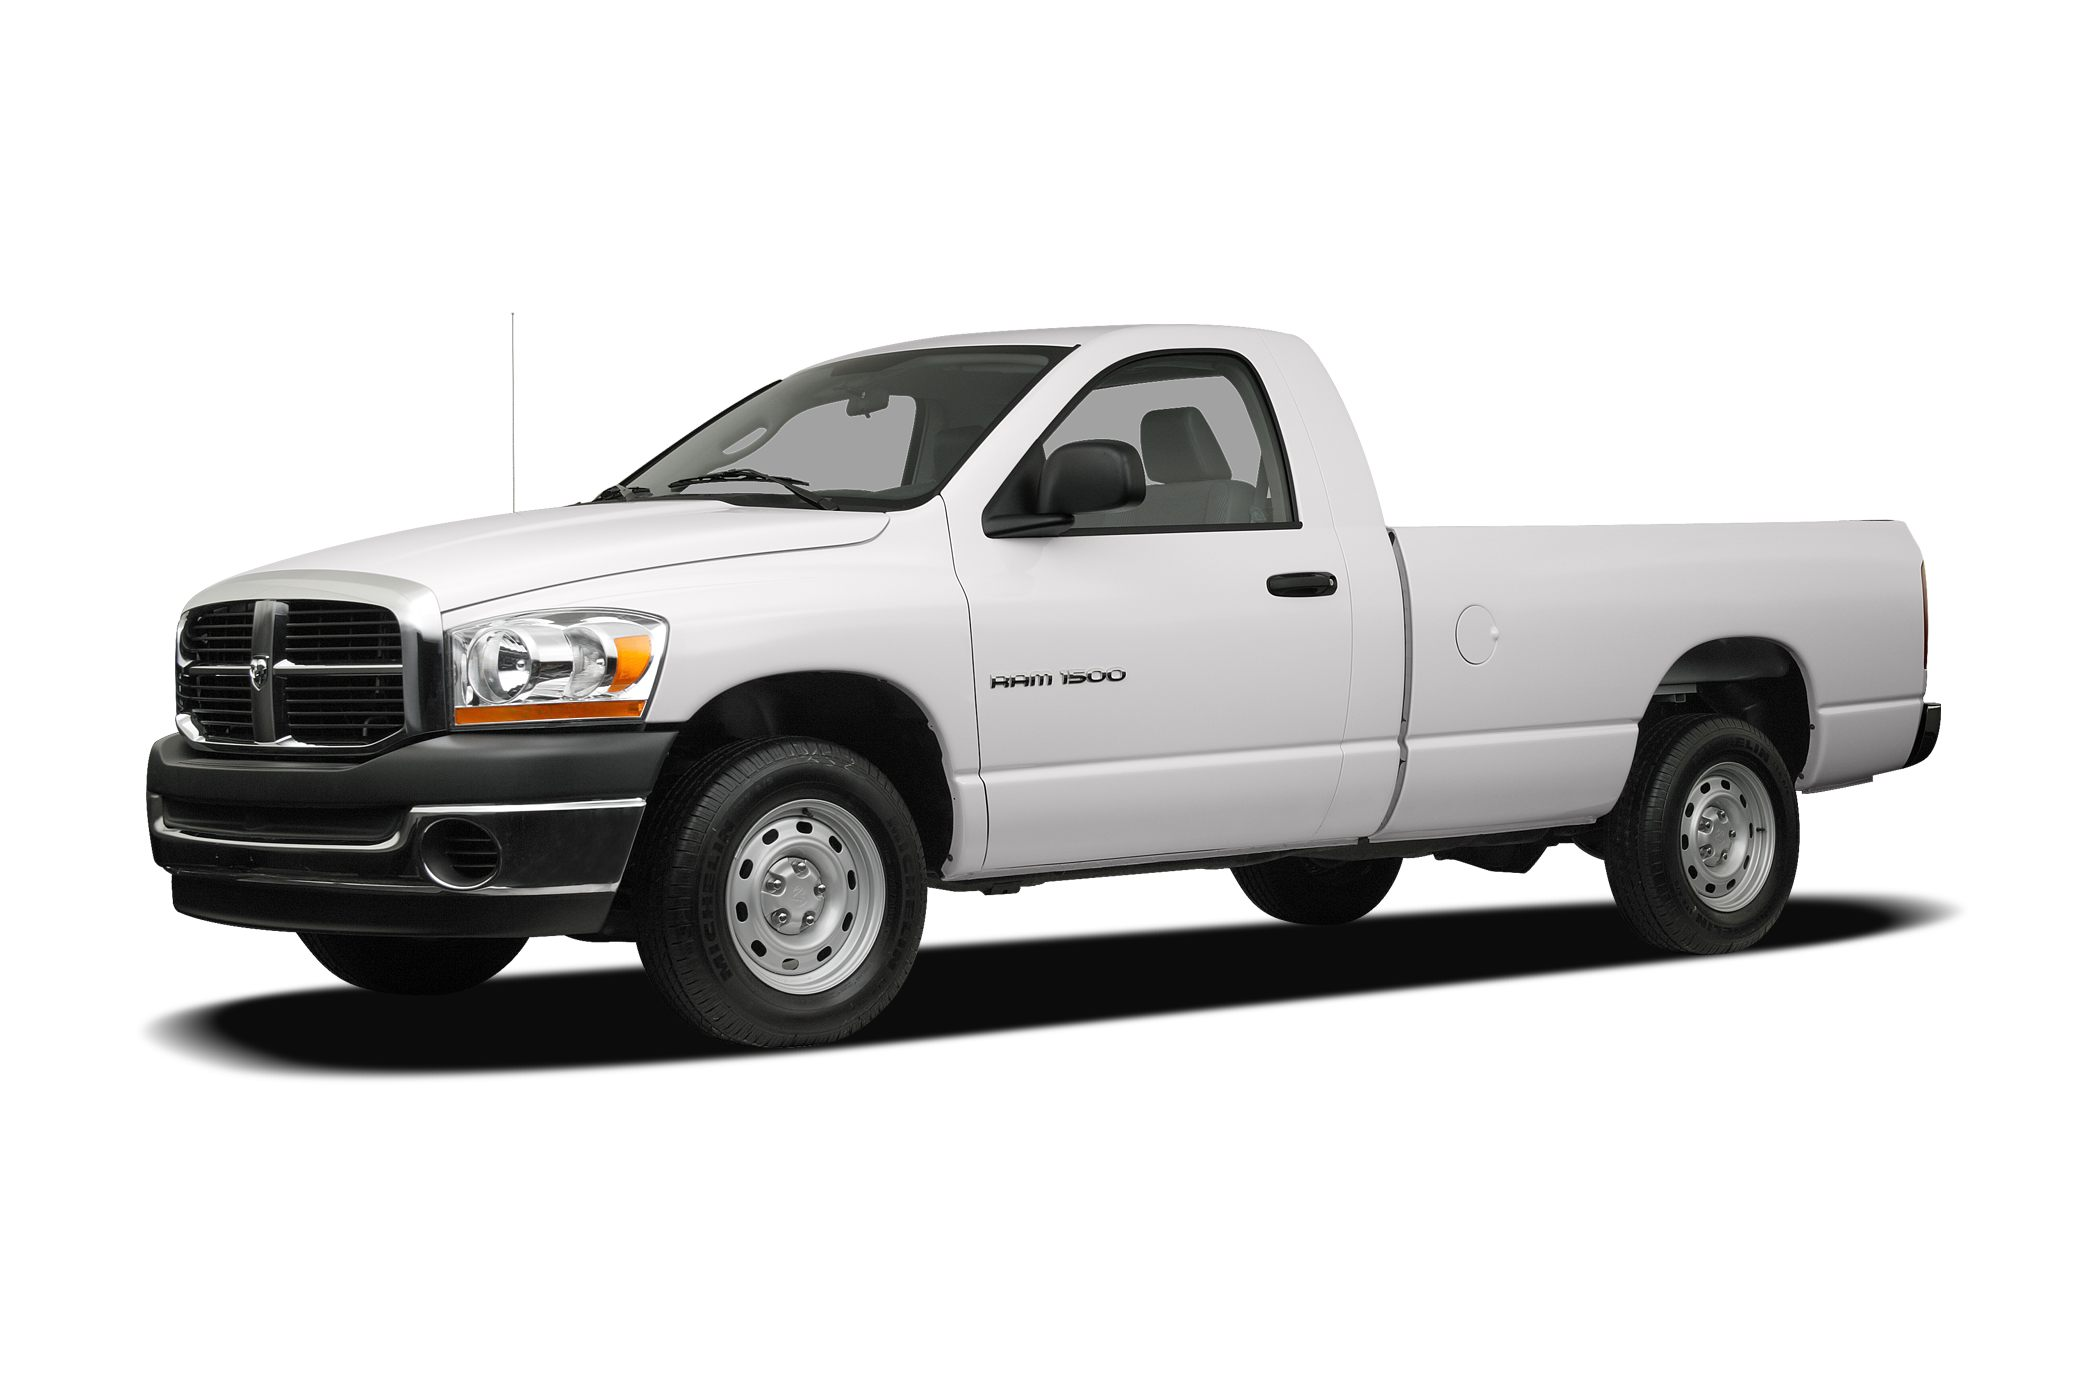 2008 Dodge Ram 1500 ST FRESH TRADE DRIVES GREAT ICE COLD AIR 5 DAY 300 MILE EXCHANGERETURN PO